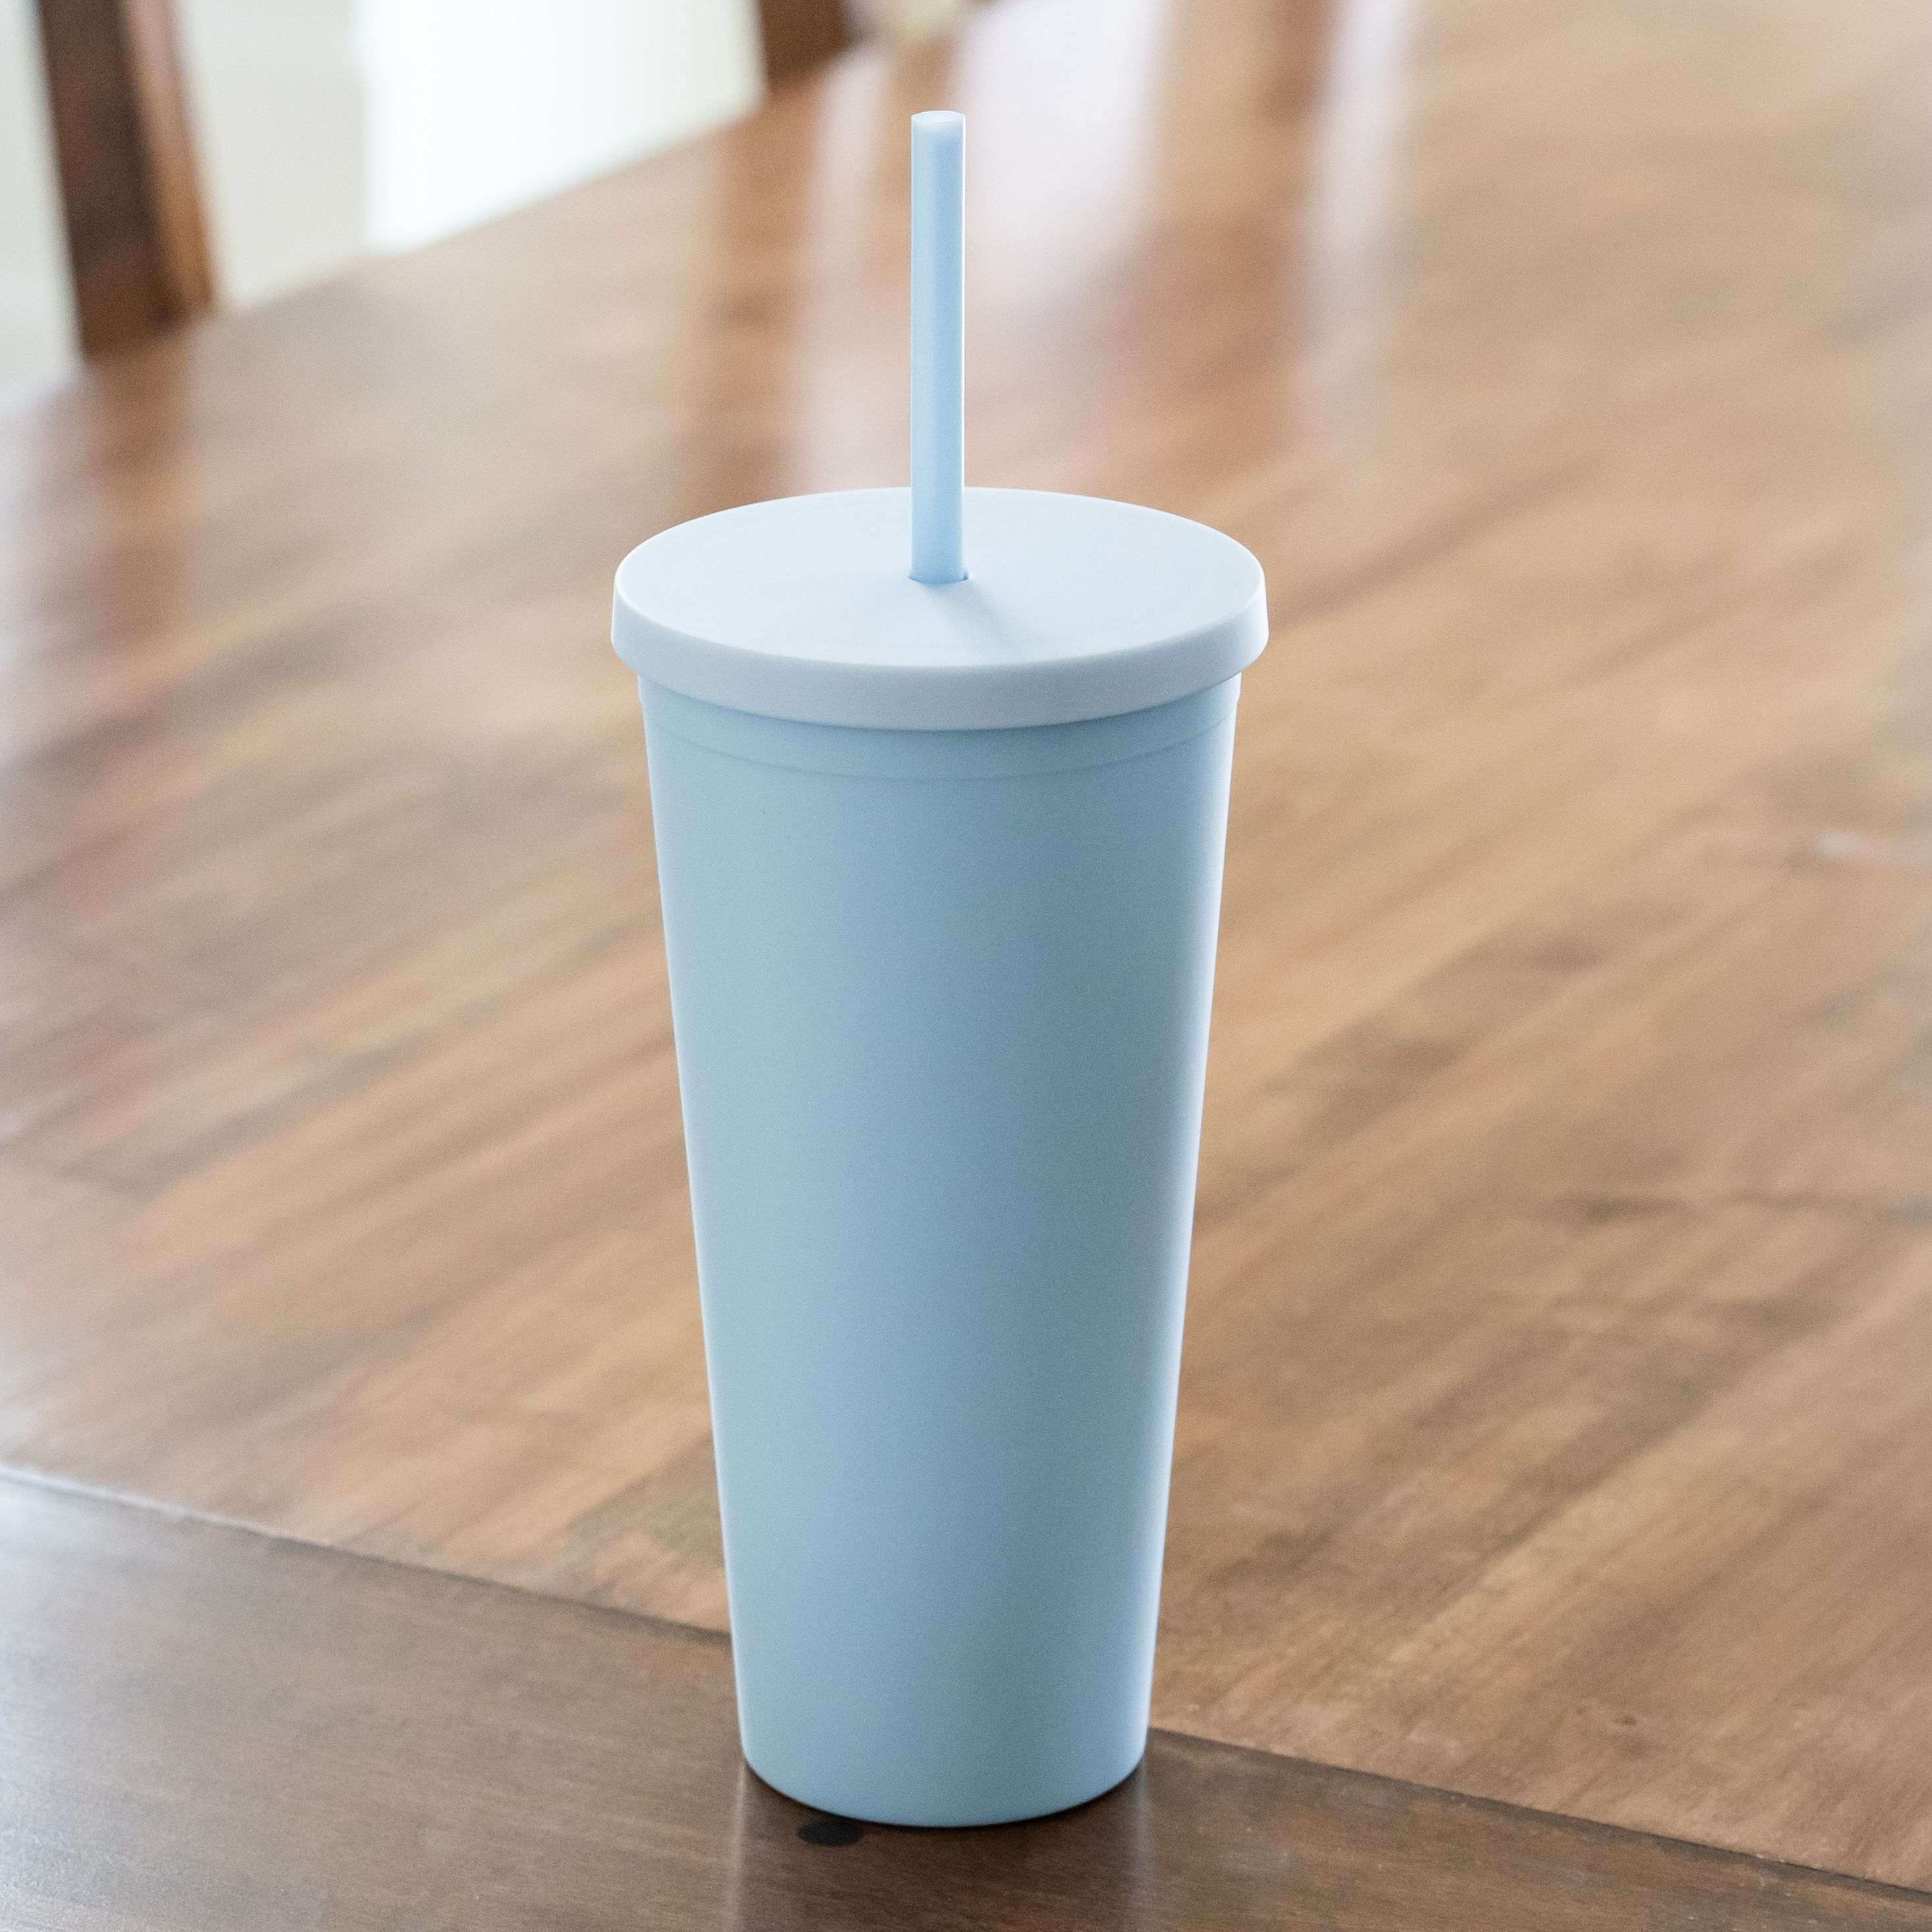 STRATA CUPS Tumbler Cups with Lids (8pack) 220z Colored